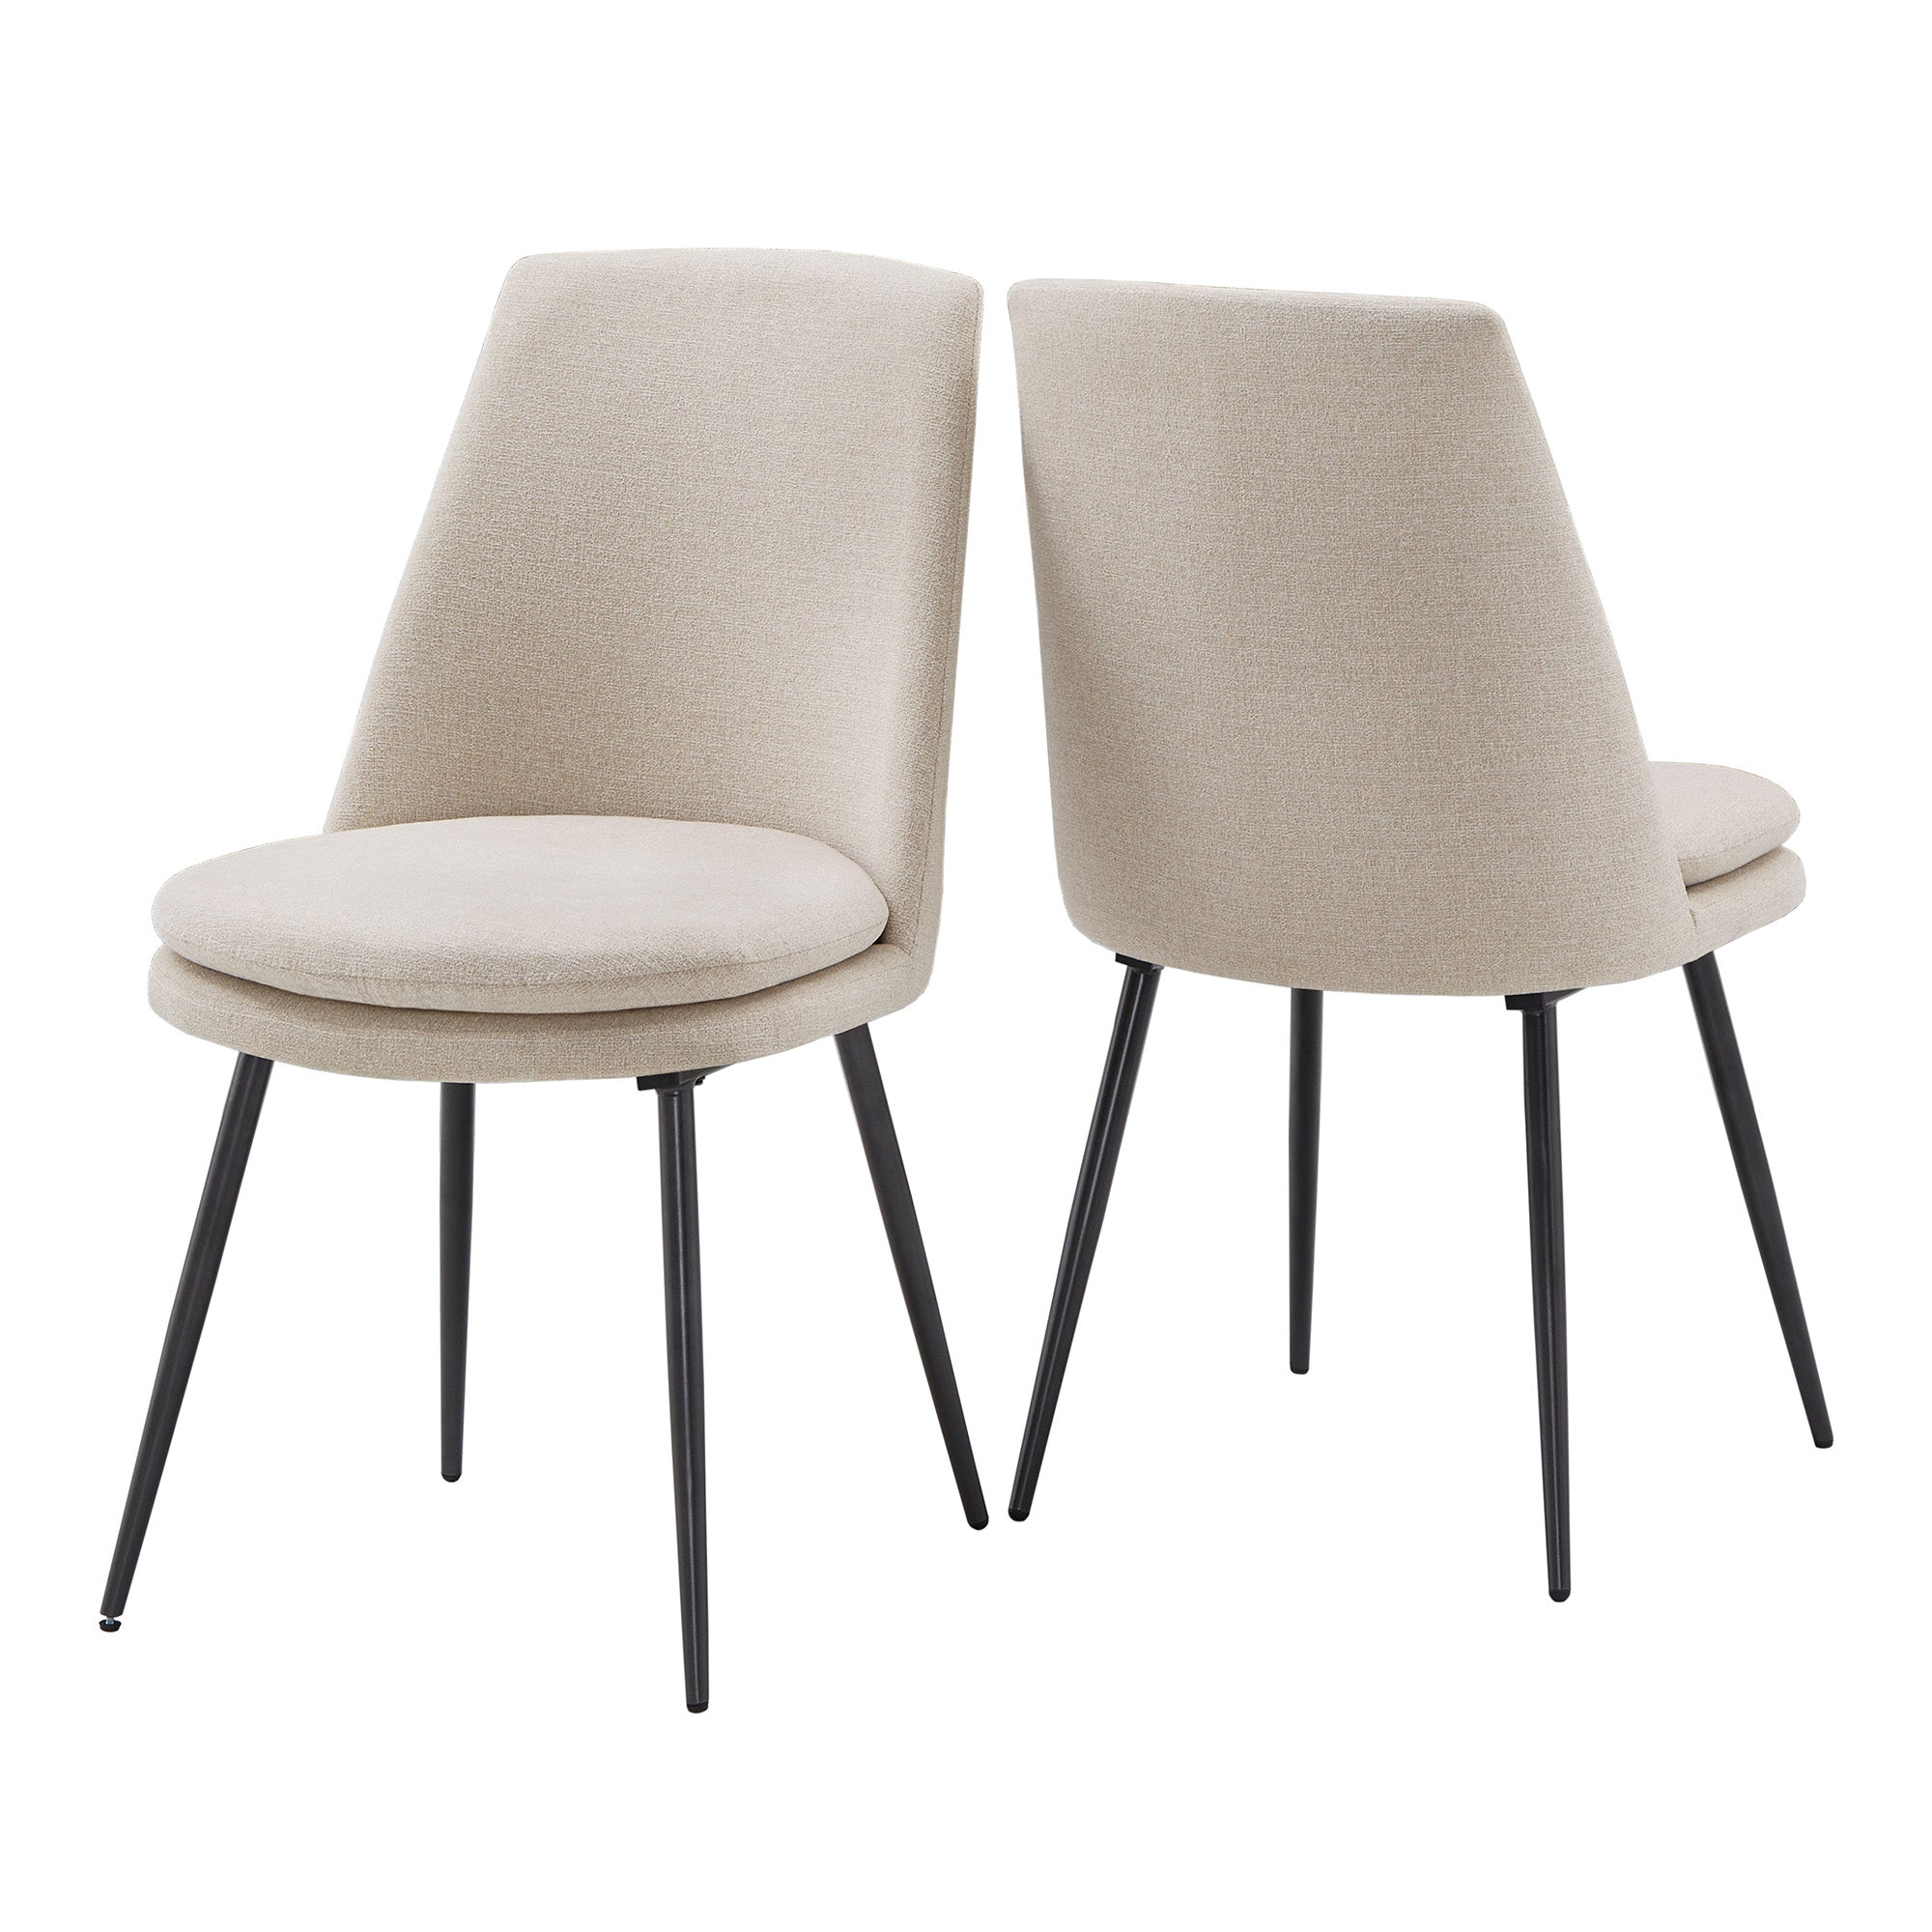 Chenille Fabric Dining Chairs (Set of 2) - Beige